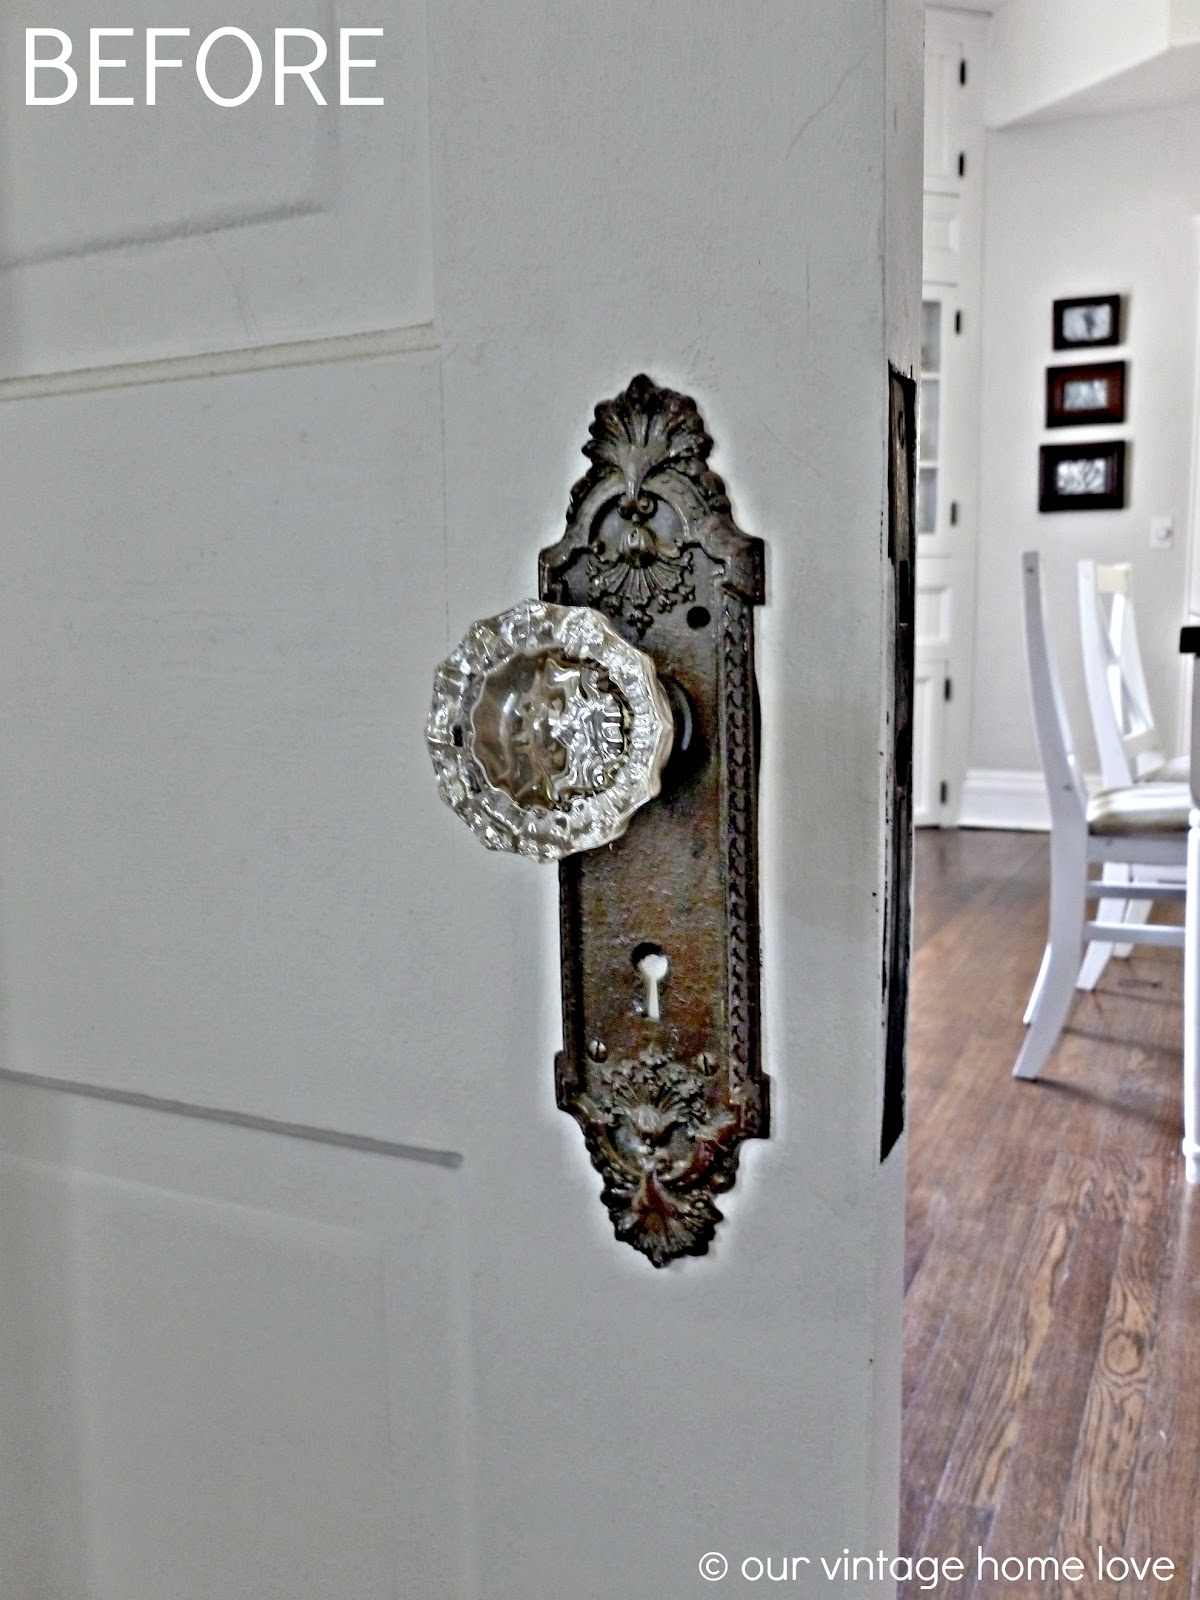 Pocket Doors and Porcelain Door Knobs - Our Vintage Home Love: Pocket Doors And Porcelain Door Knobs